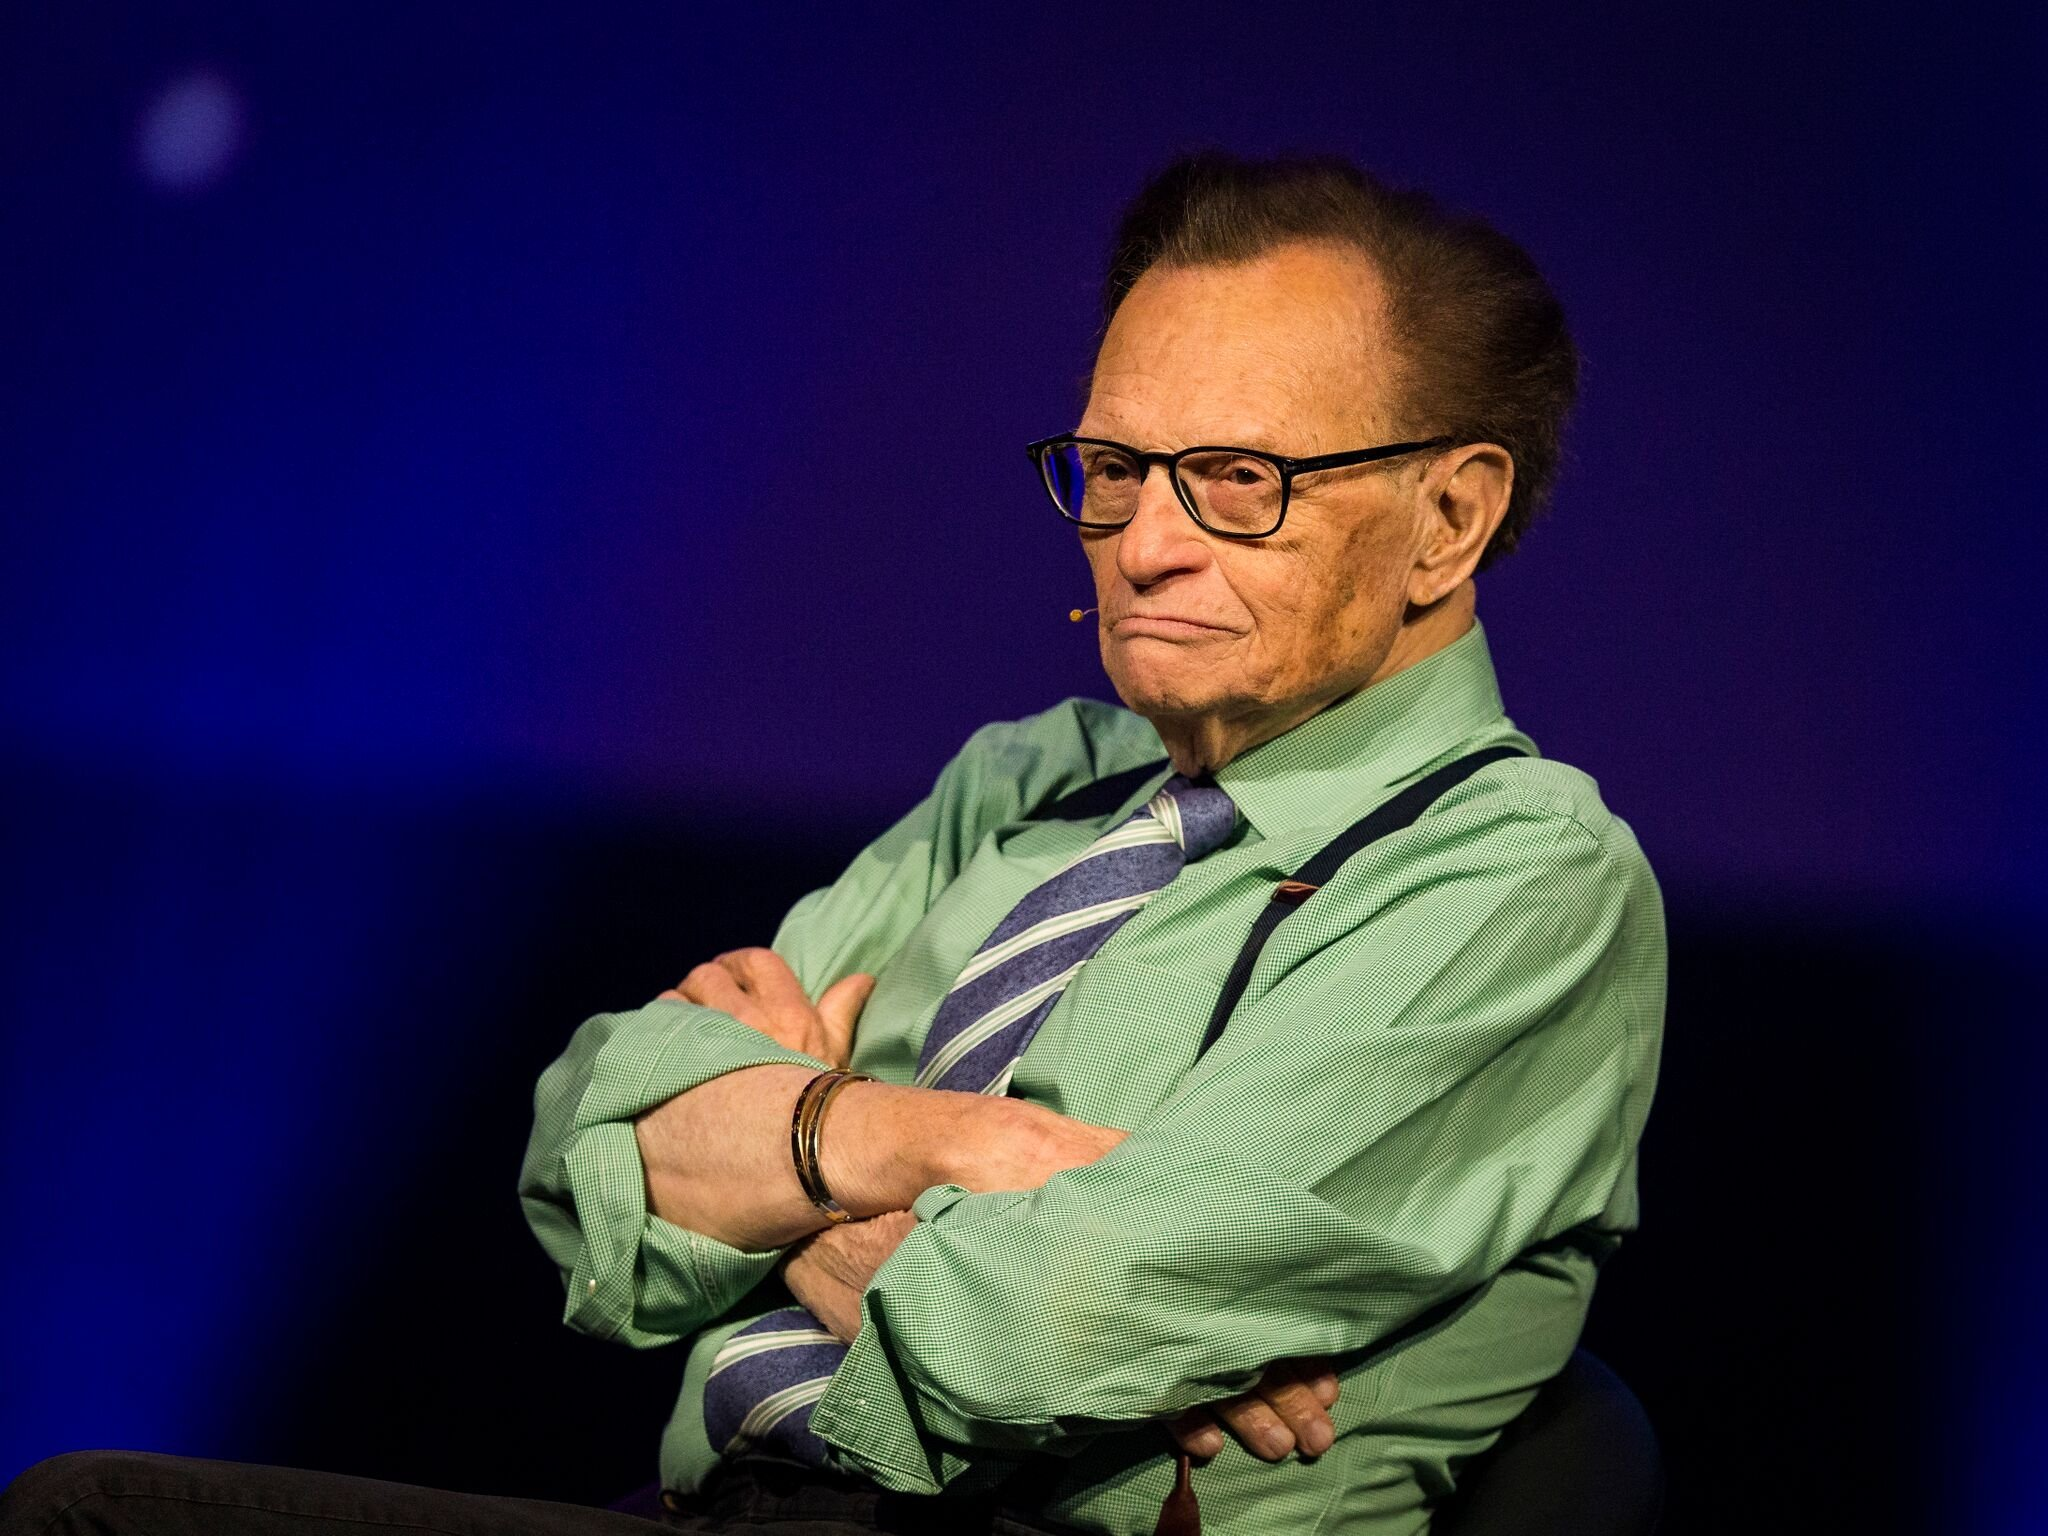 Larry King participates on a discussion on fake news in the media during the Starmus Festival  | Getty Images